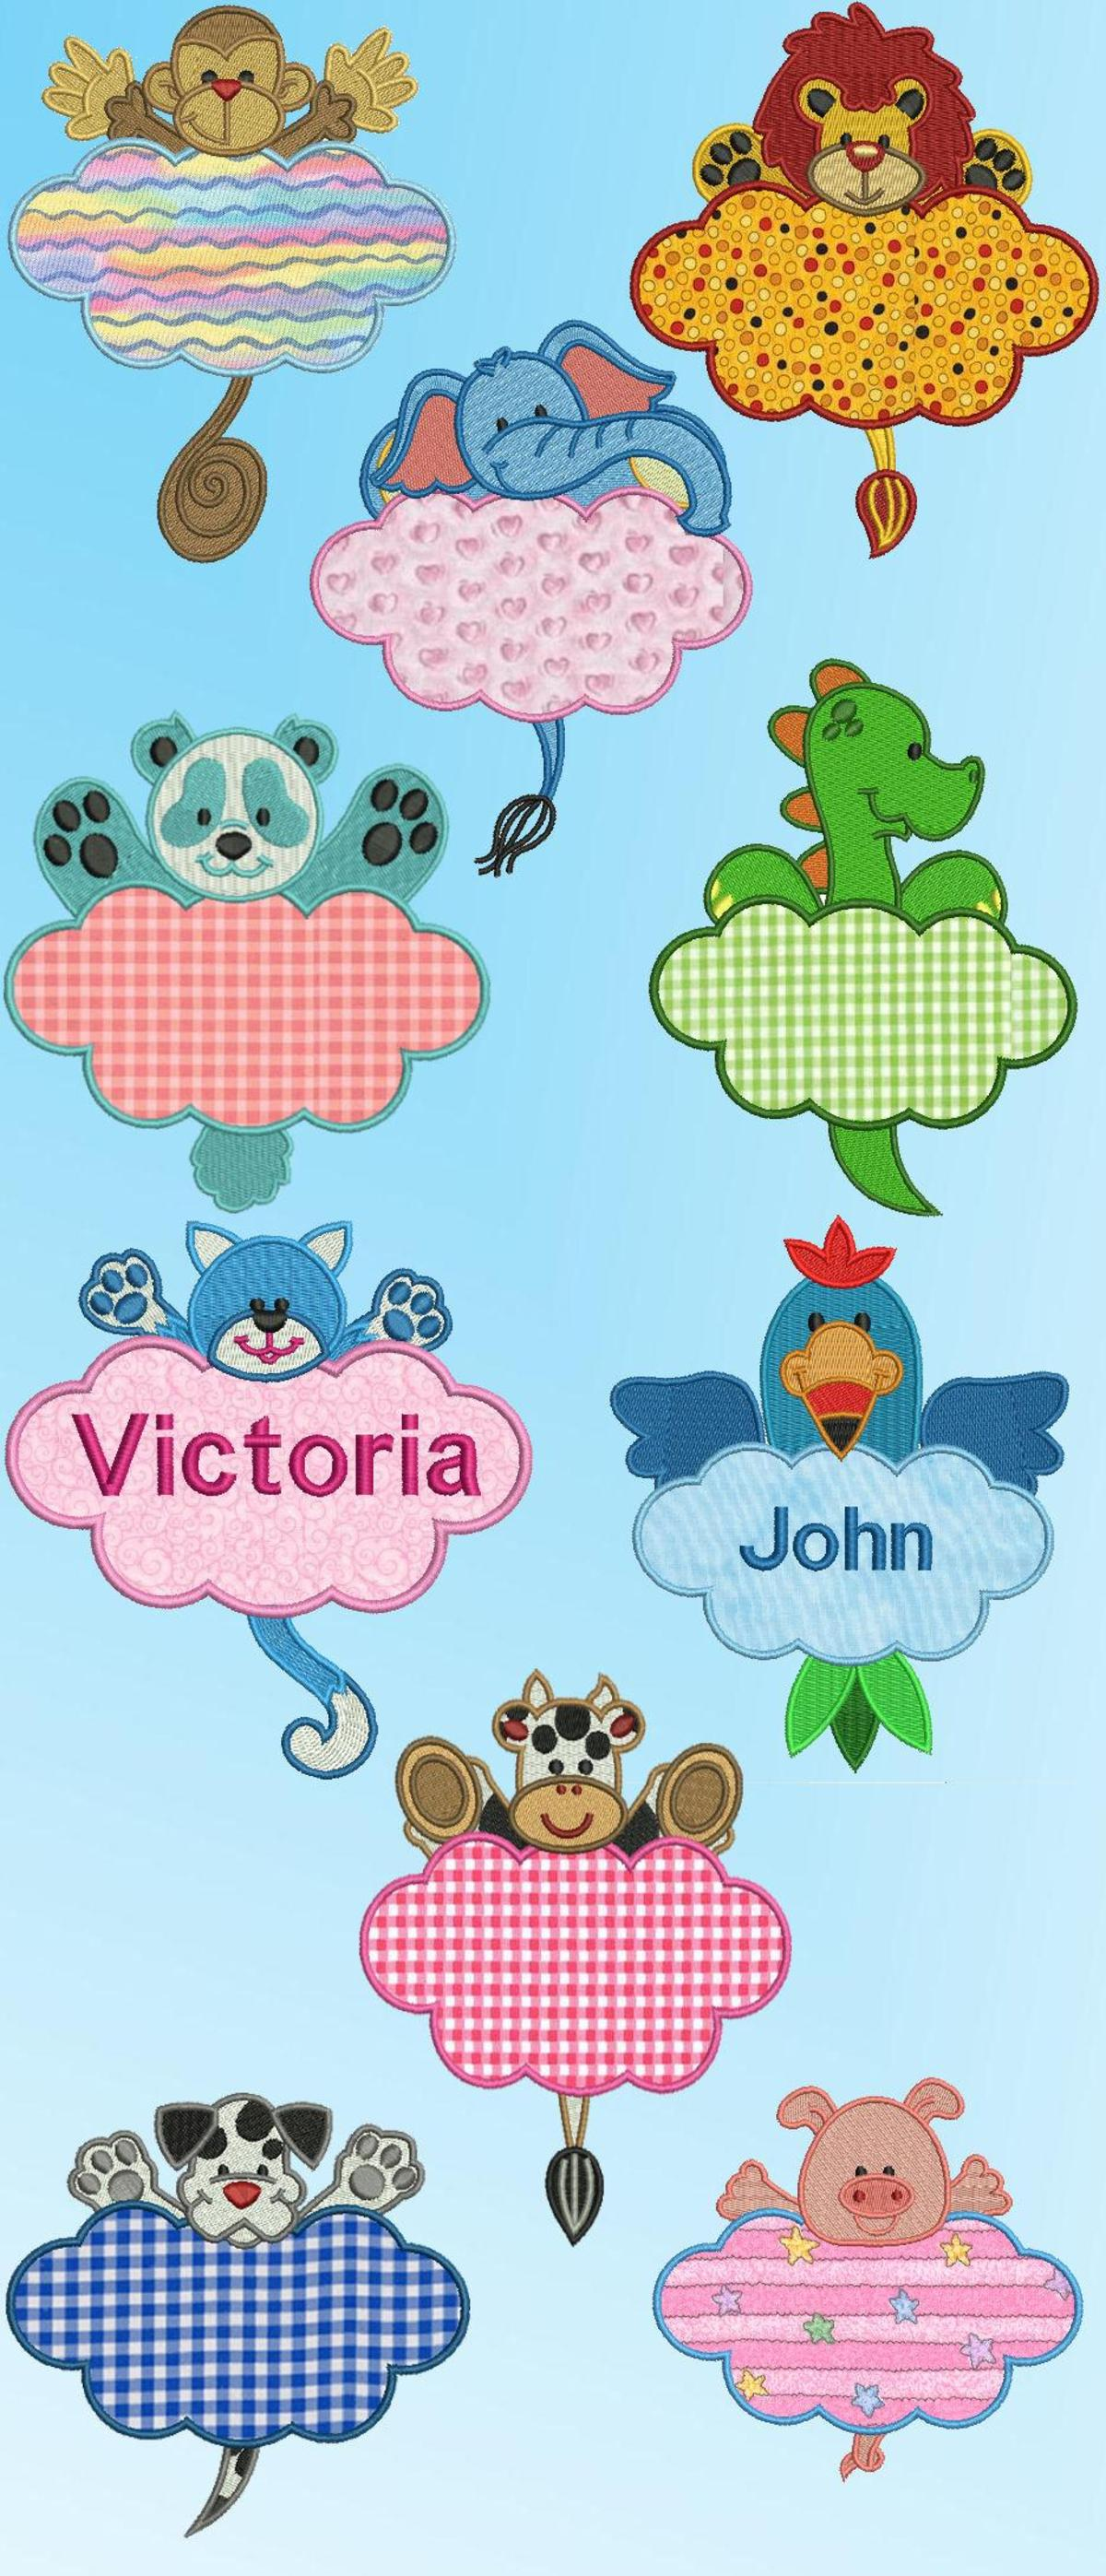 Cute critter name tags applique machine embroidery designs